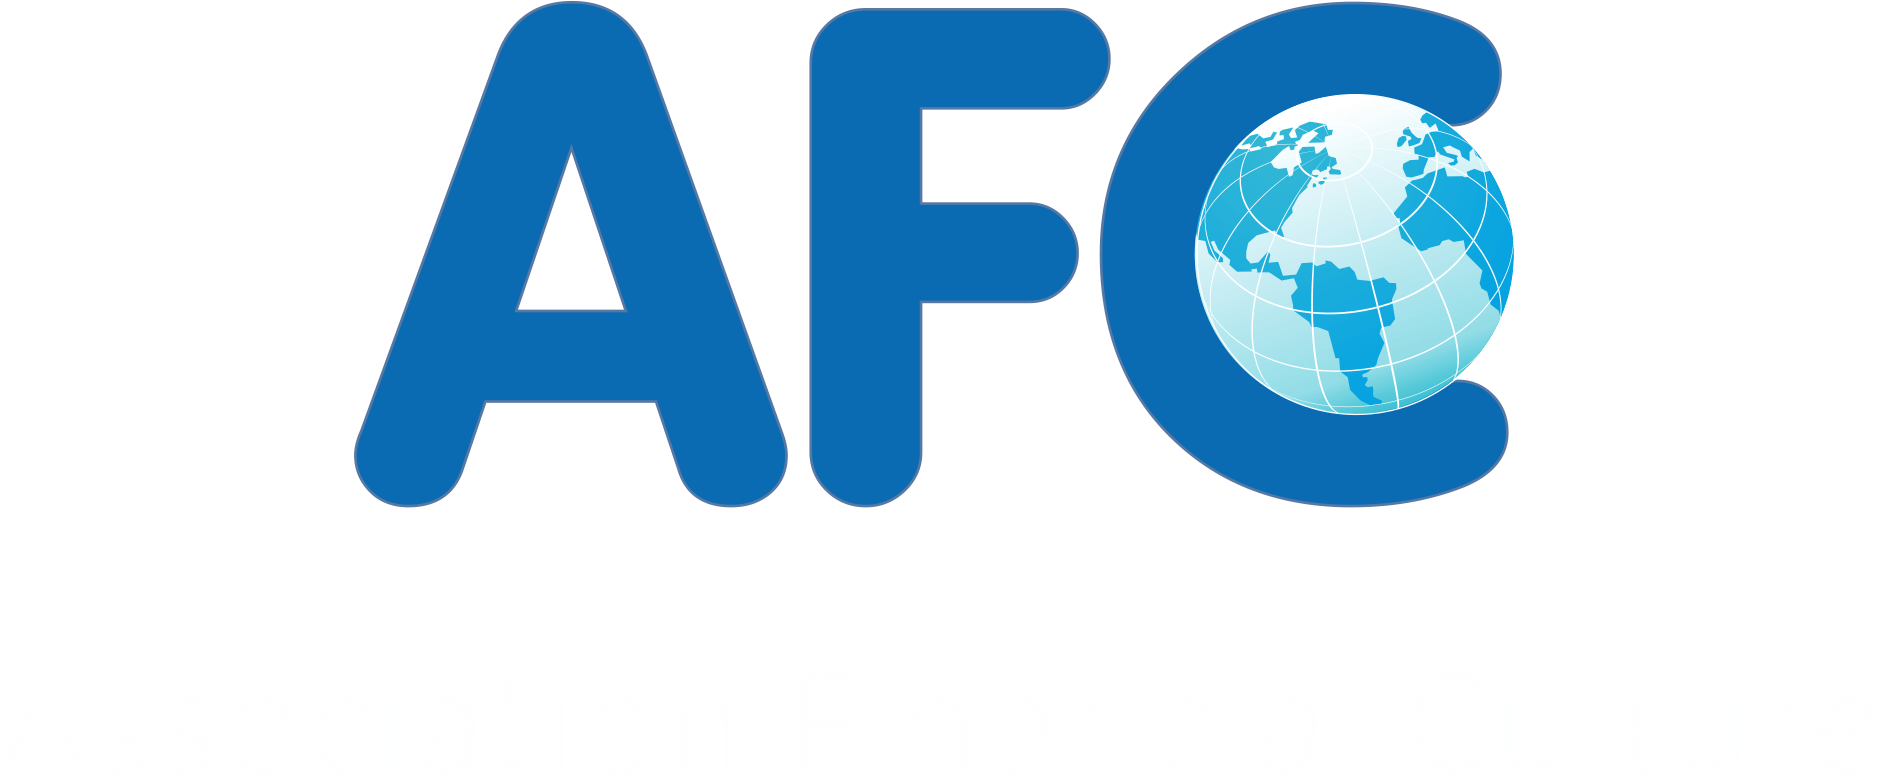 Association Financial Culture